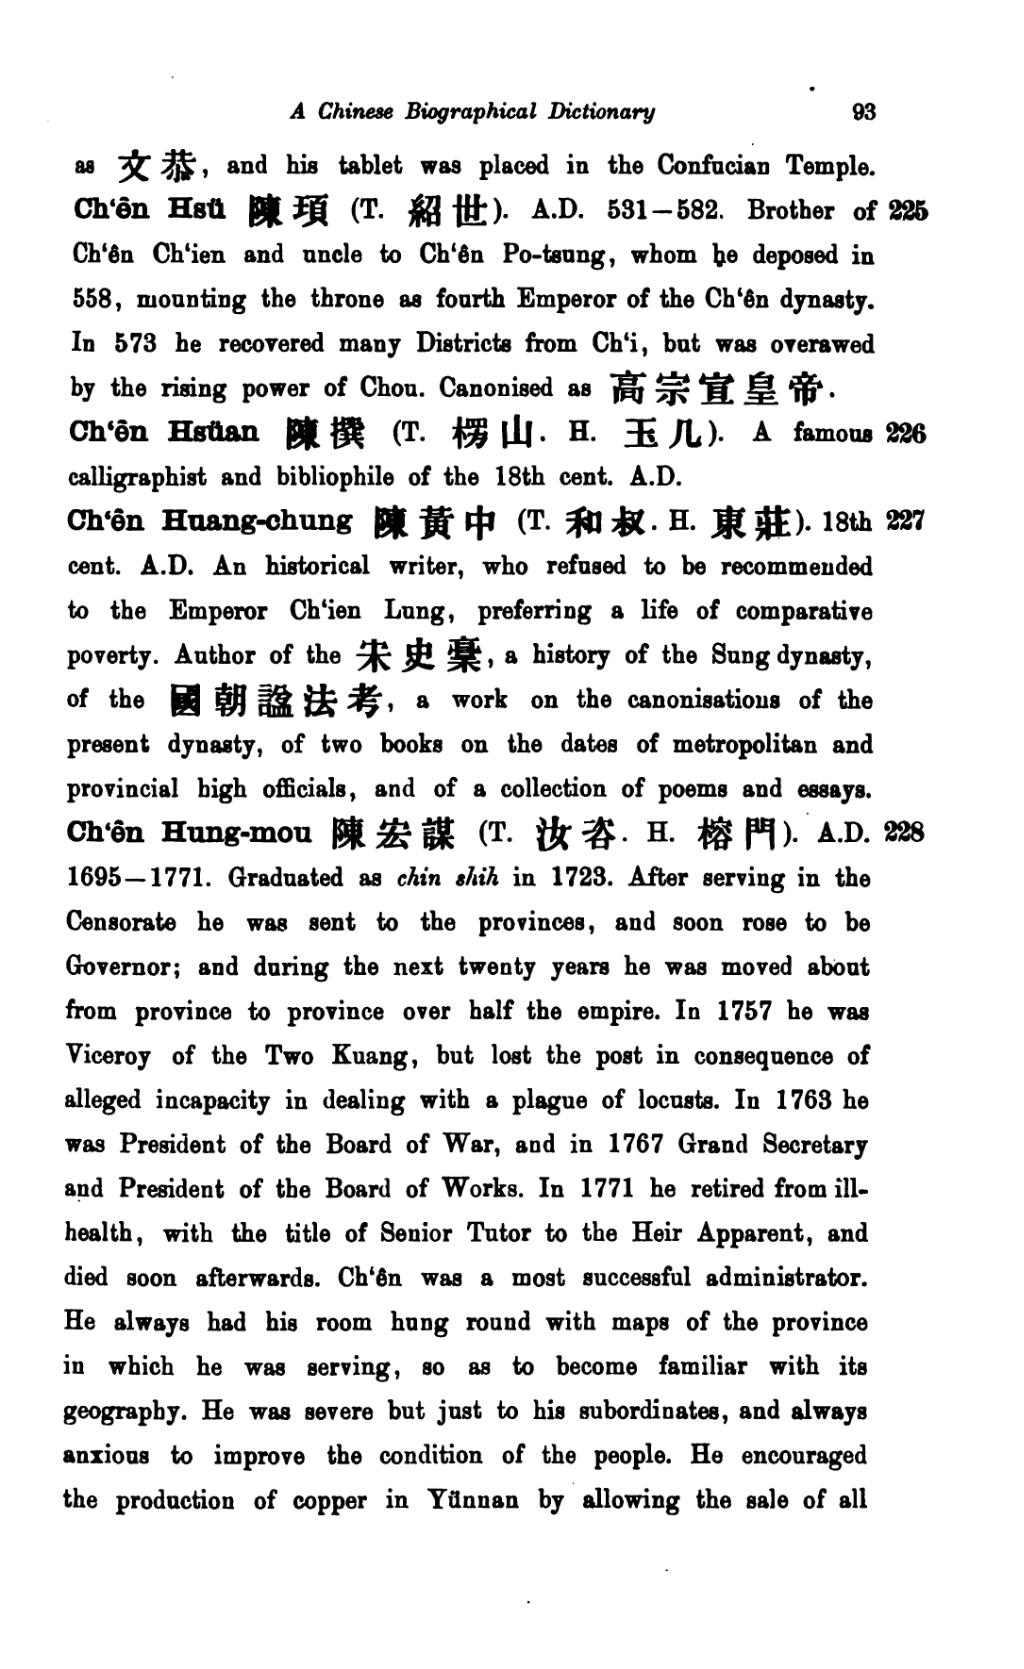 chinese biographical dictionary pdf download free